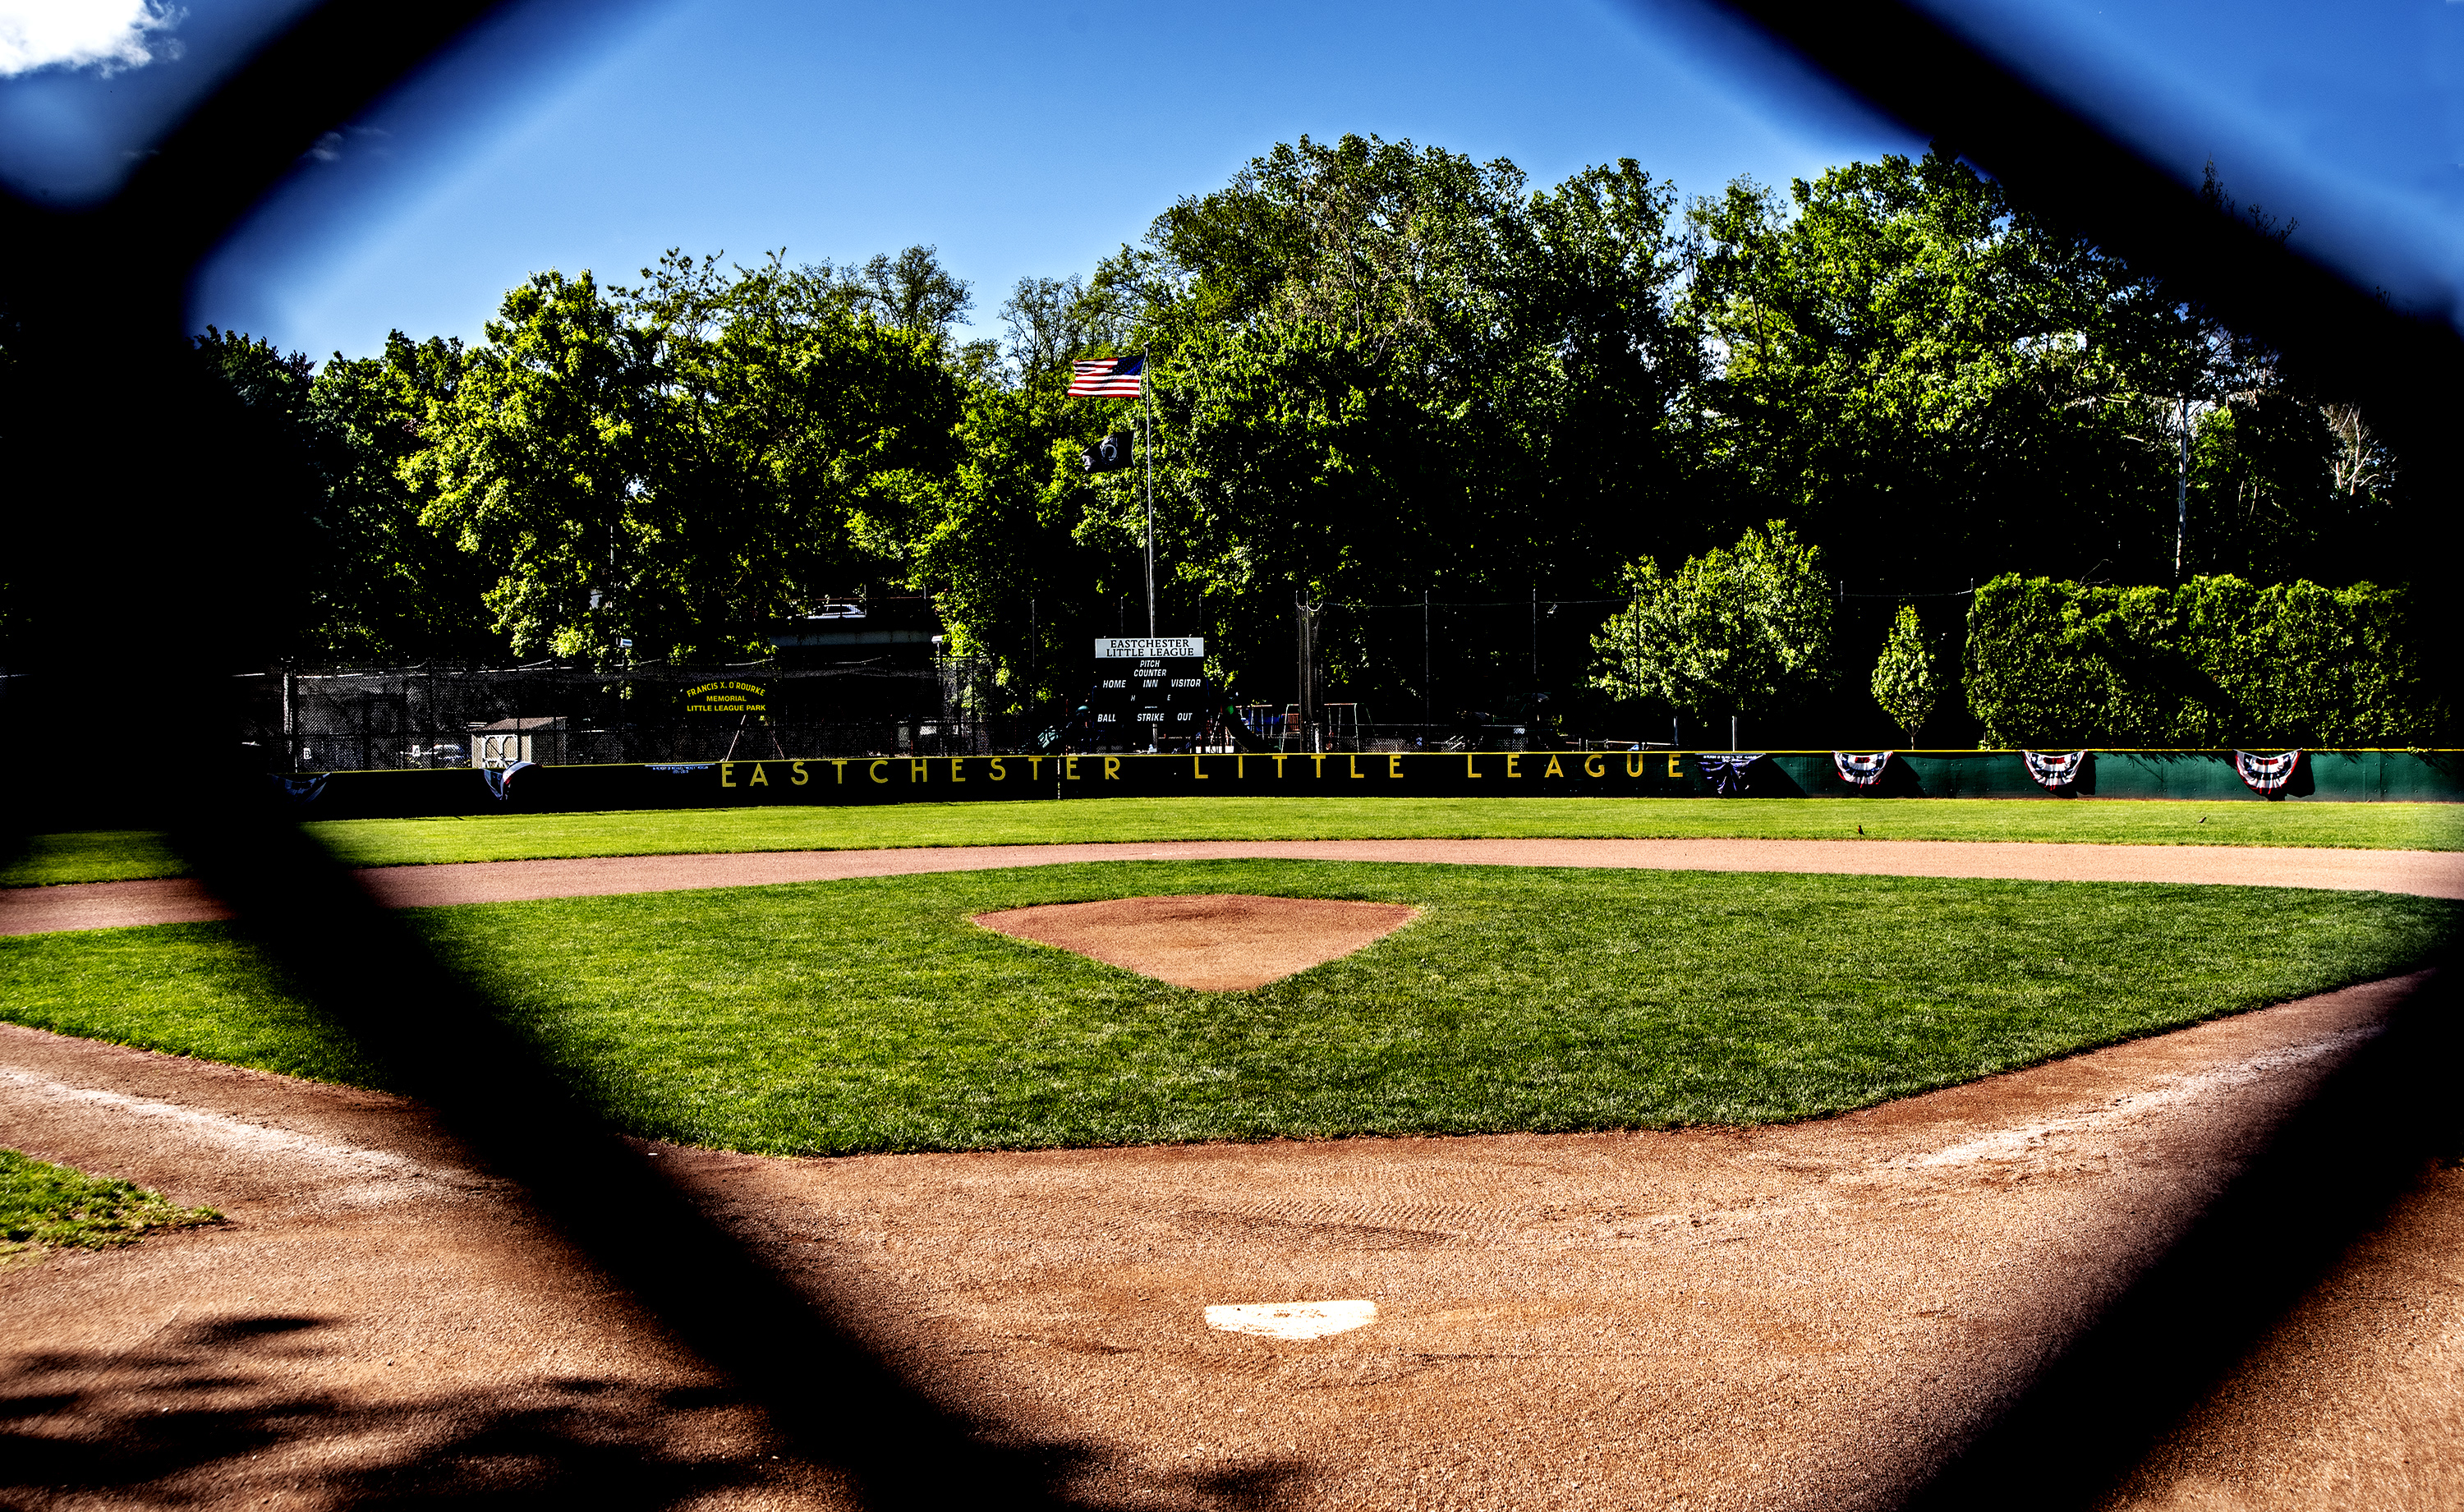 Scarsdale Little League Field